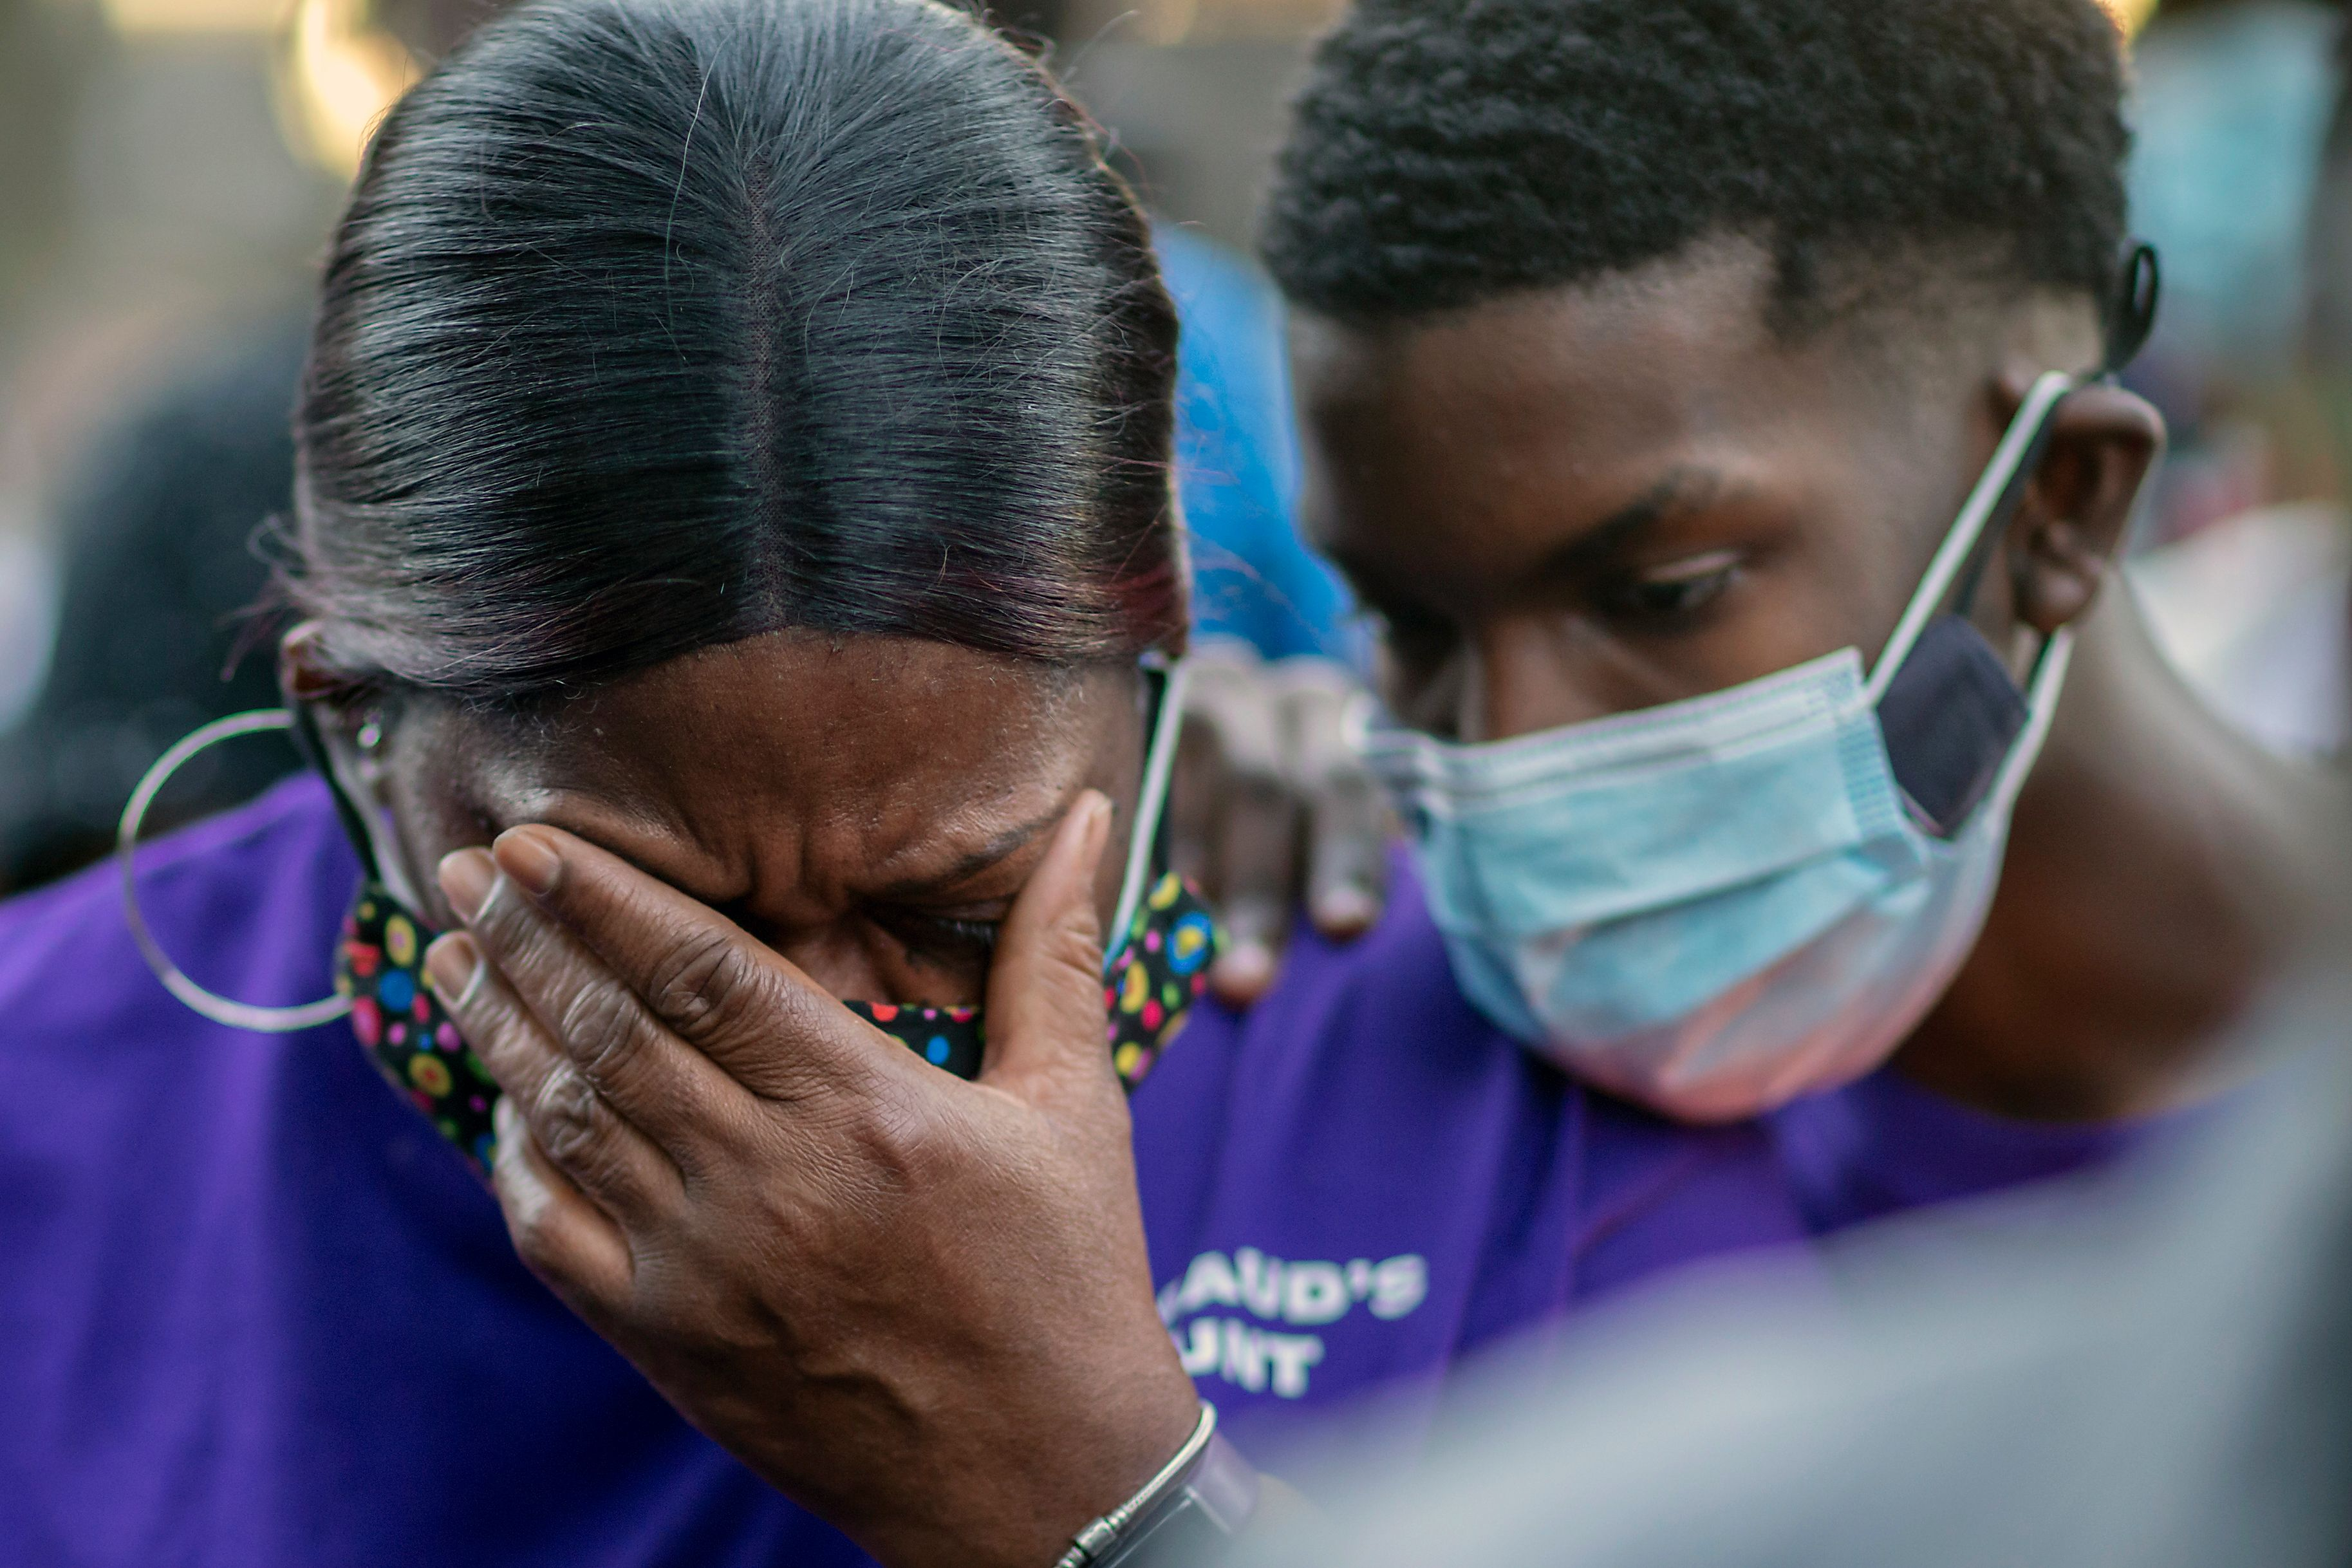 Evon Arbery, Ahmaud Arbery's aunt, is comforted by a family member during Tuesday's memorial walk and candlelight vigil.&nbsp